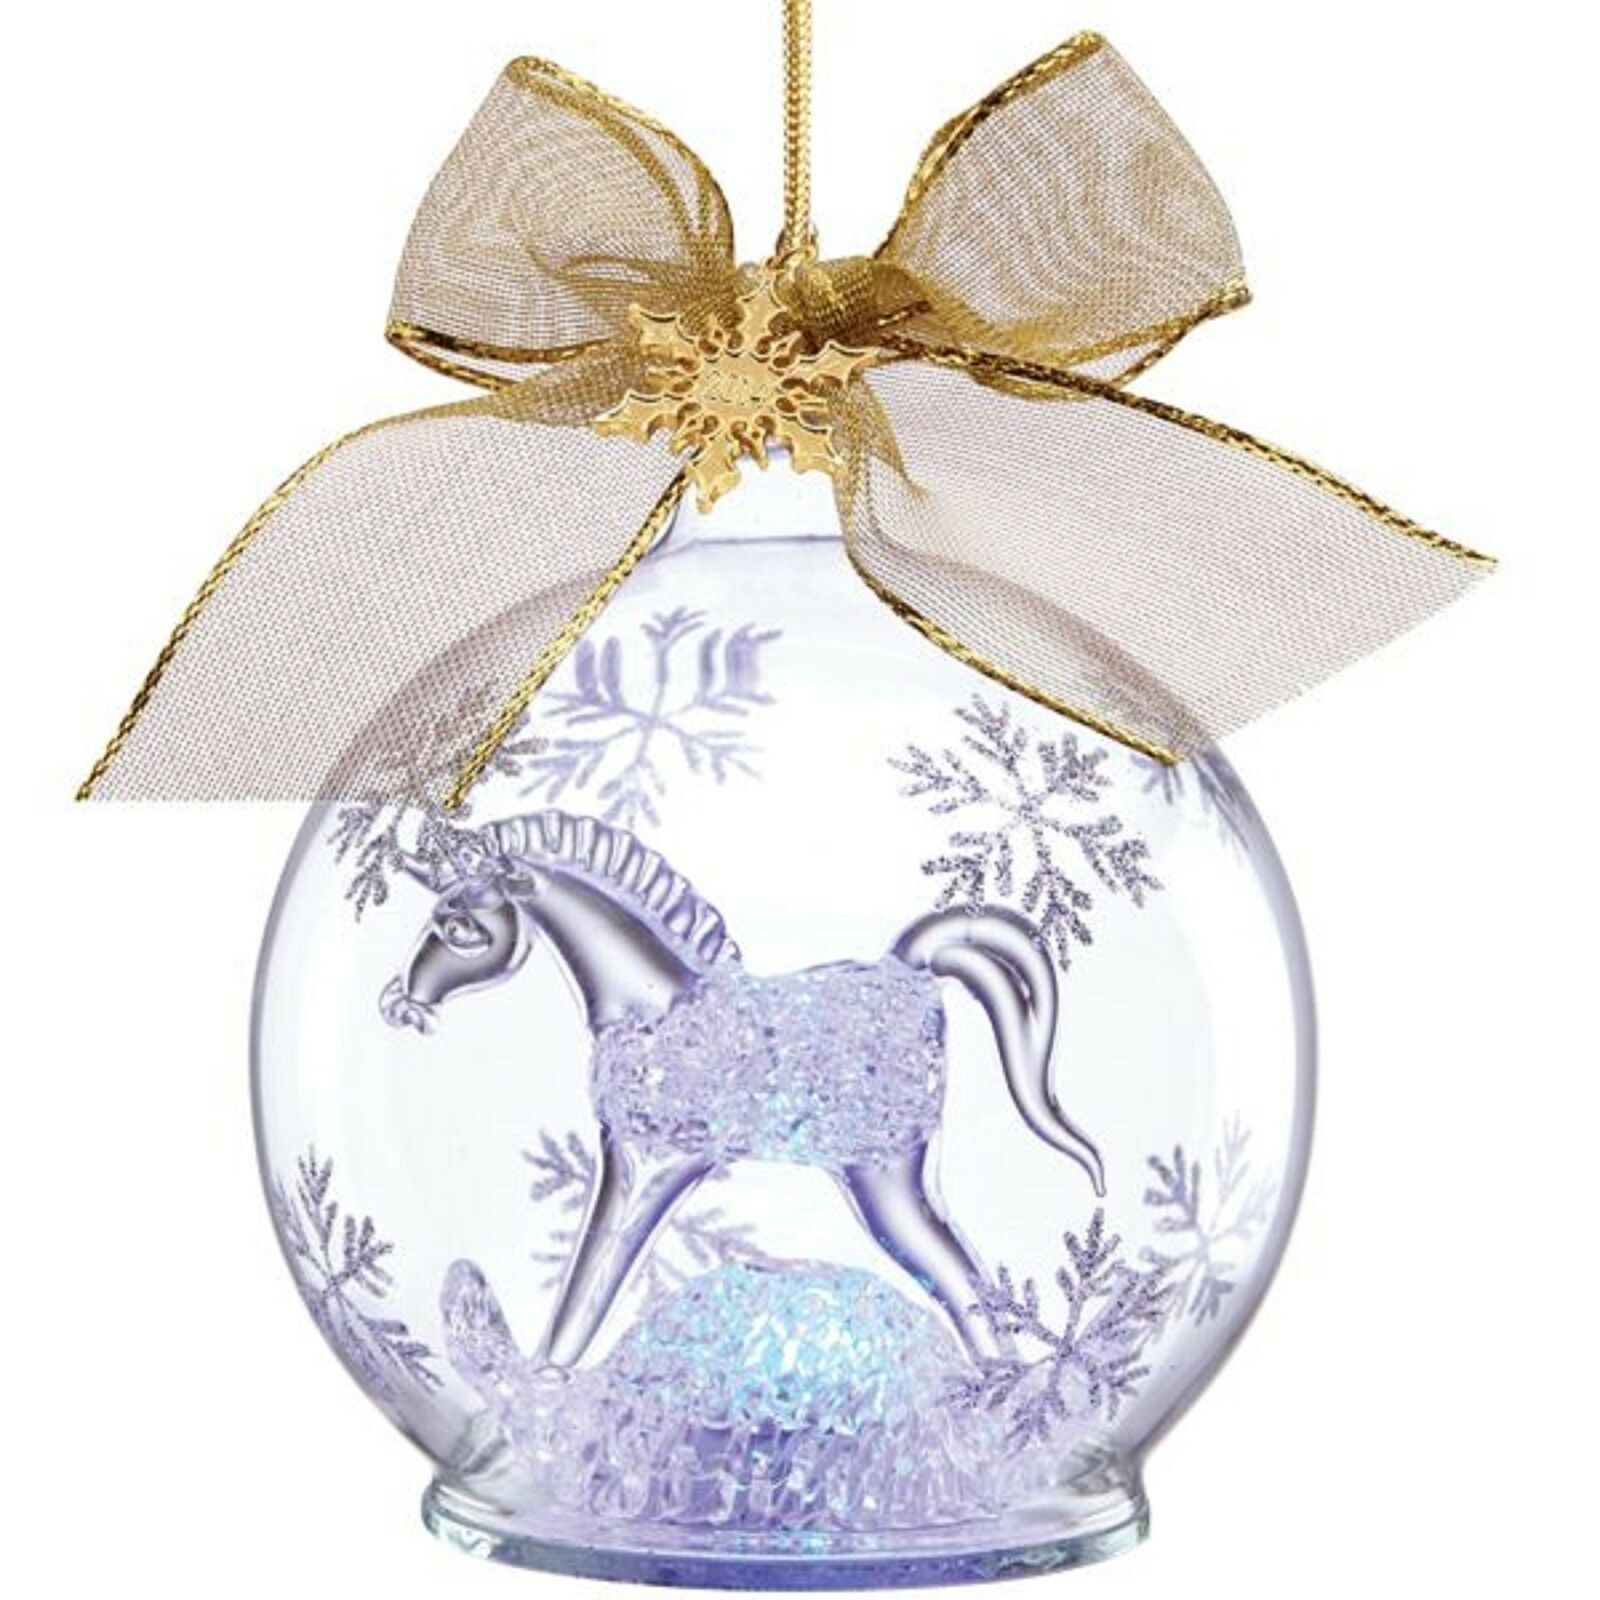 Lenox 2014 Baby's First Christmas Ornament 1st Crystal Rocking Horse Lighted NEW